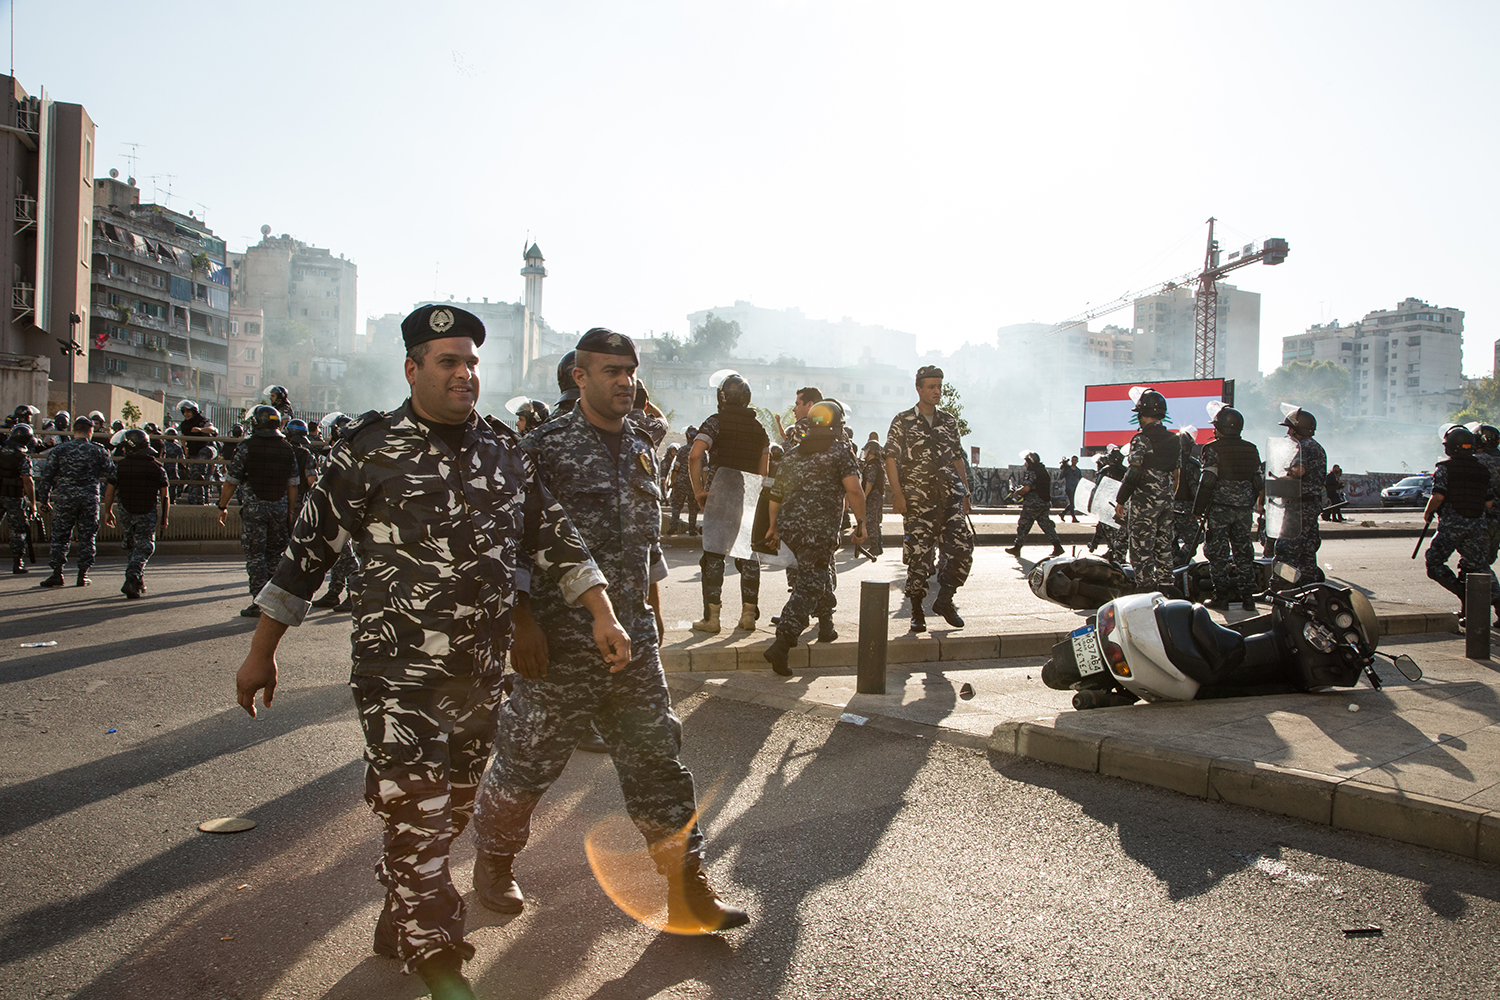 Riot police on the Ring Bridge walk back toward Riad al-Solh Square as tear gas dissipates in the background on Oct. 29.